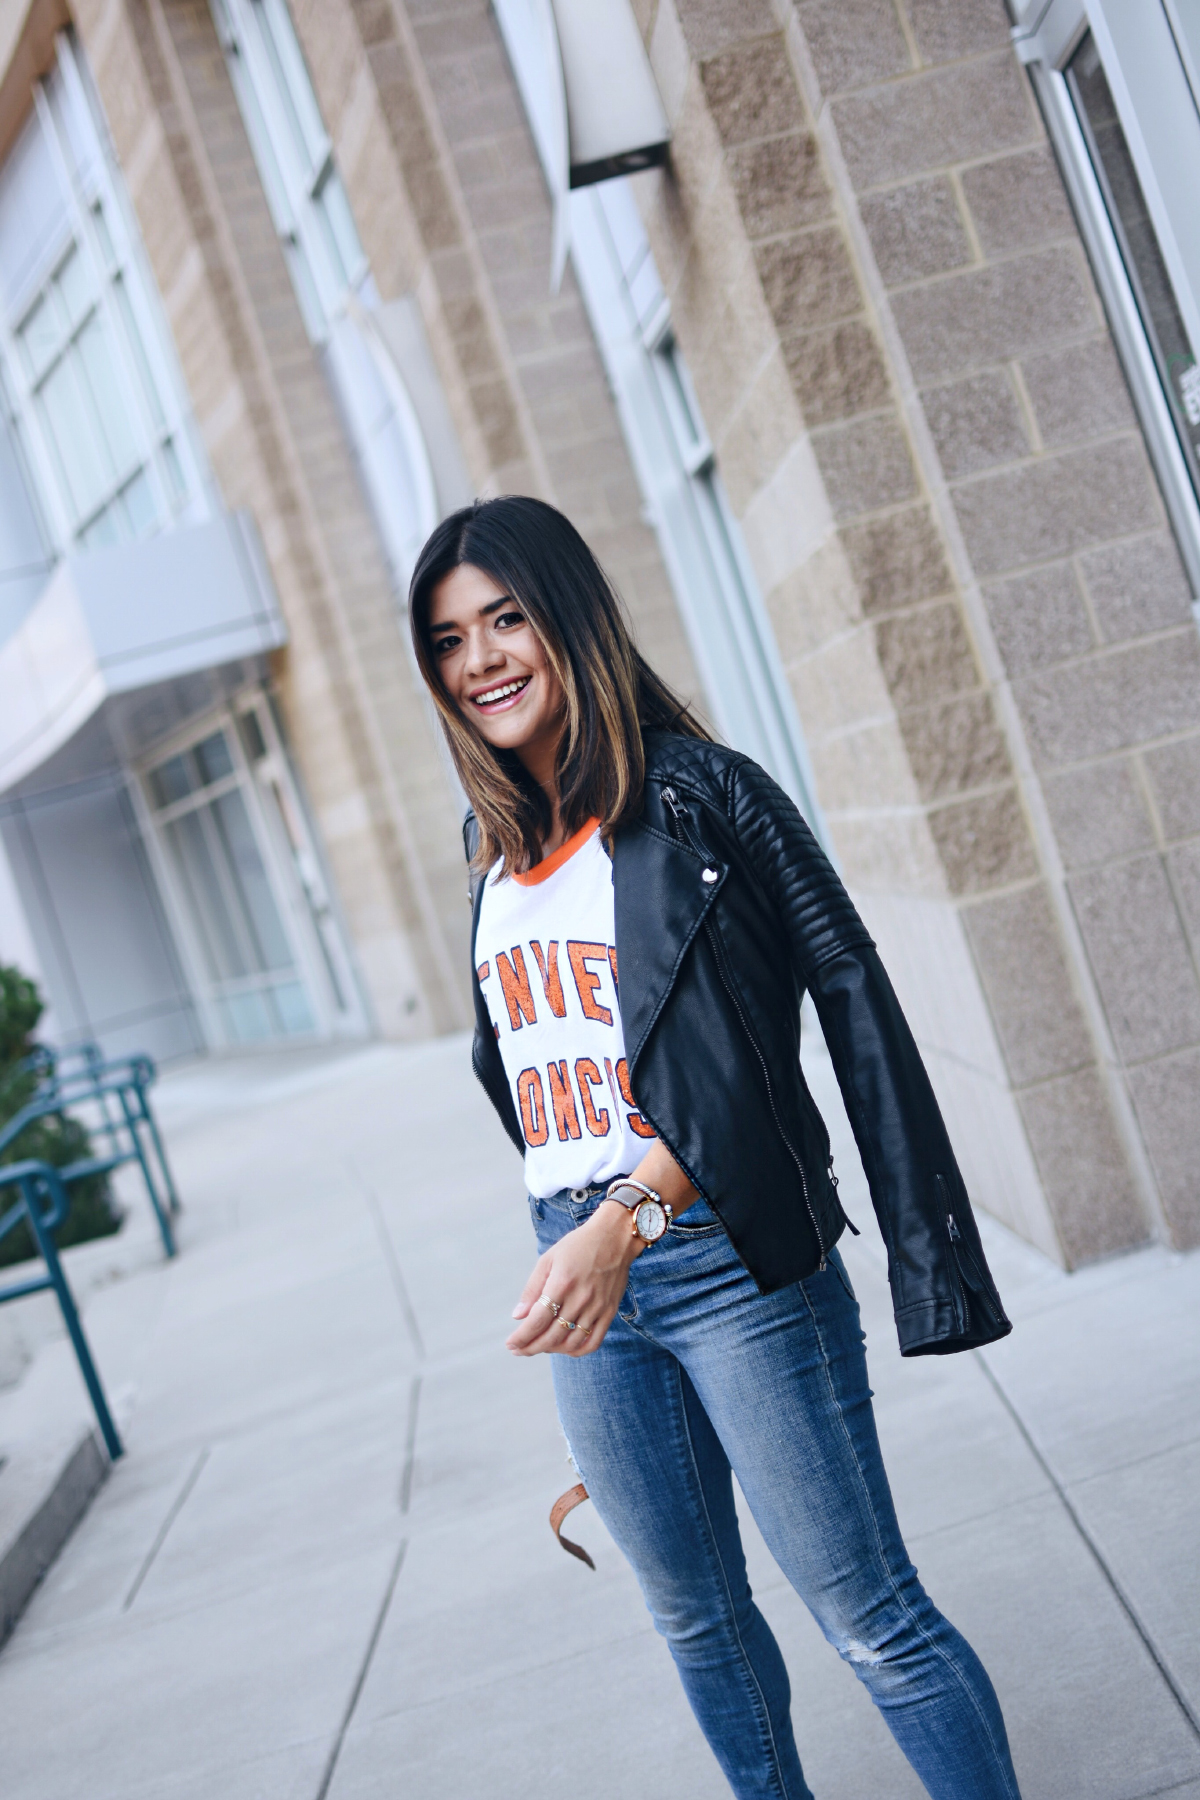 HOW TO STYLE YOUR DENVER BRONCOS GEAR THIS SEASON